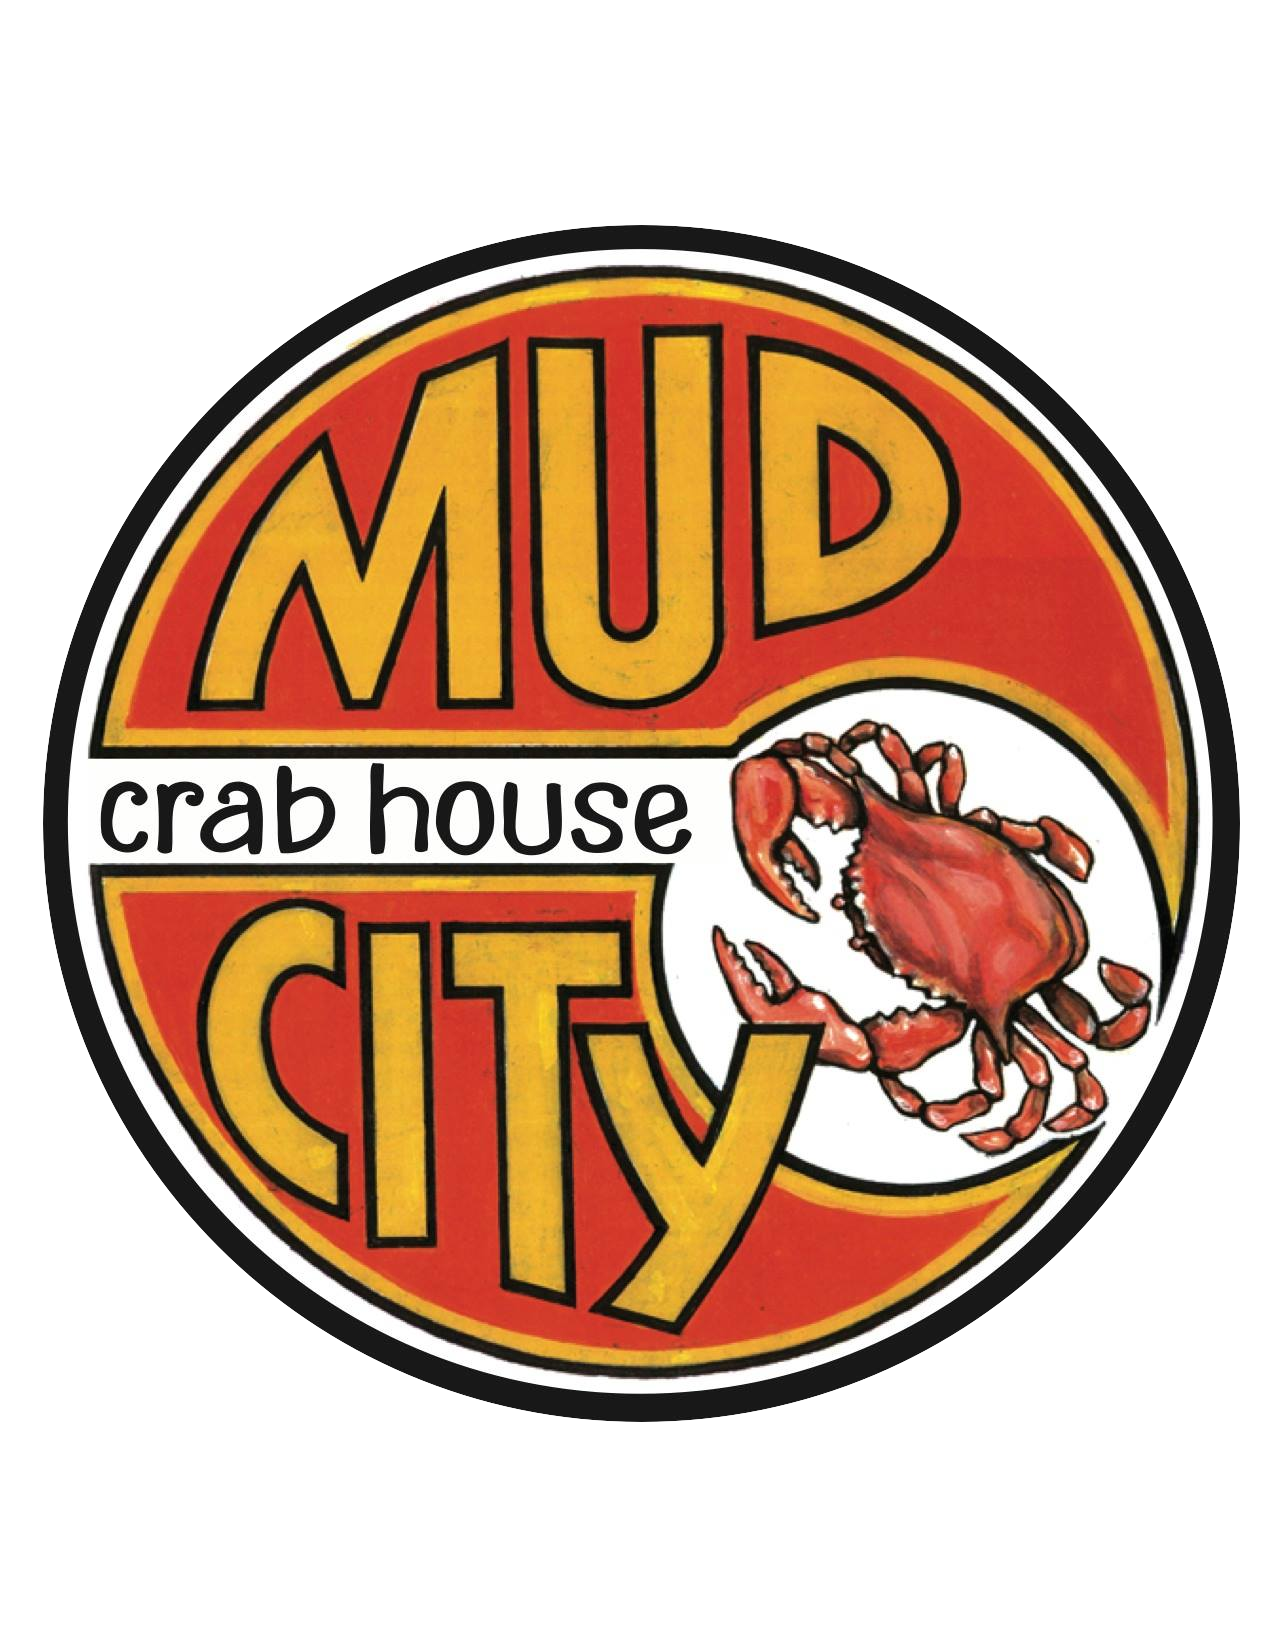 Mud City Crabhouse